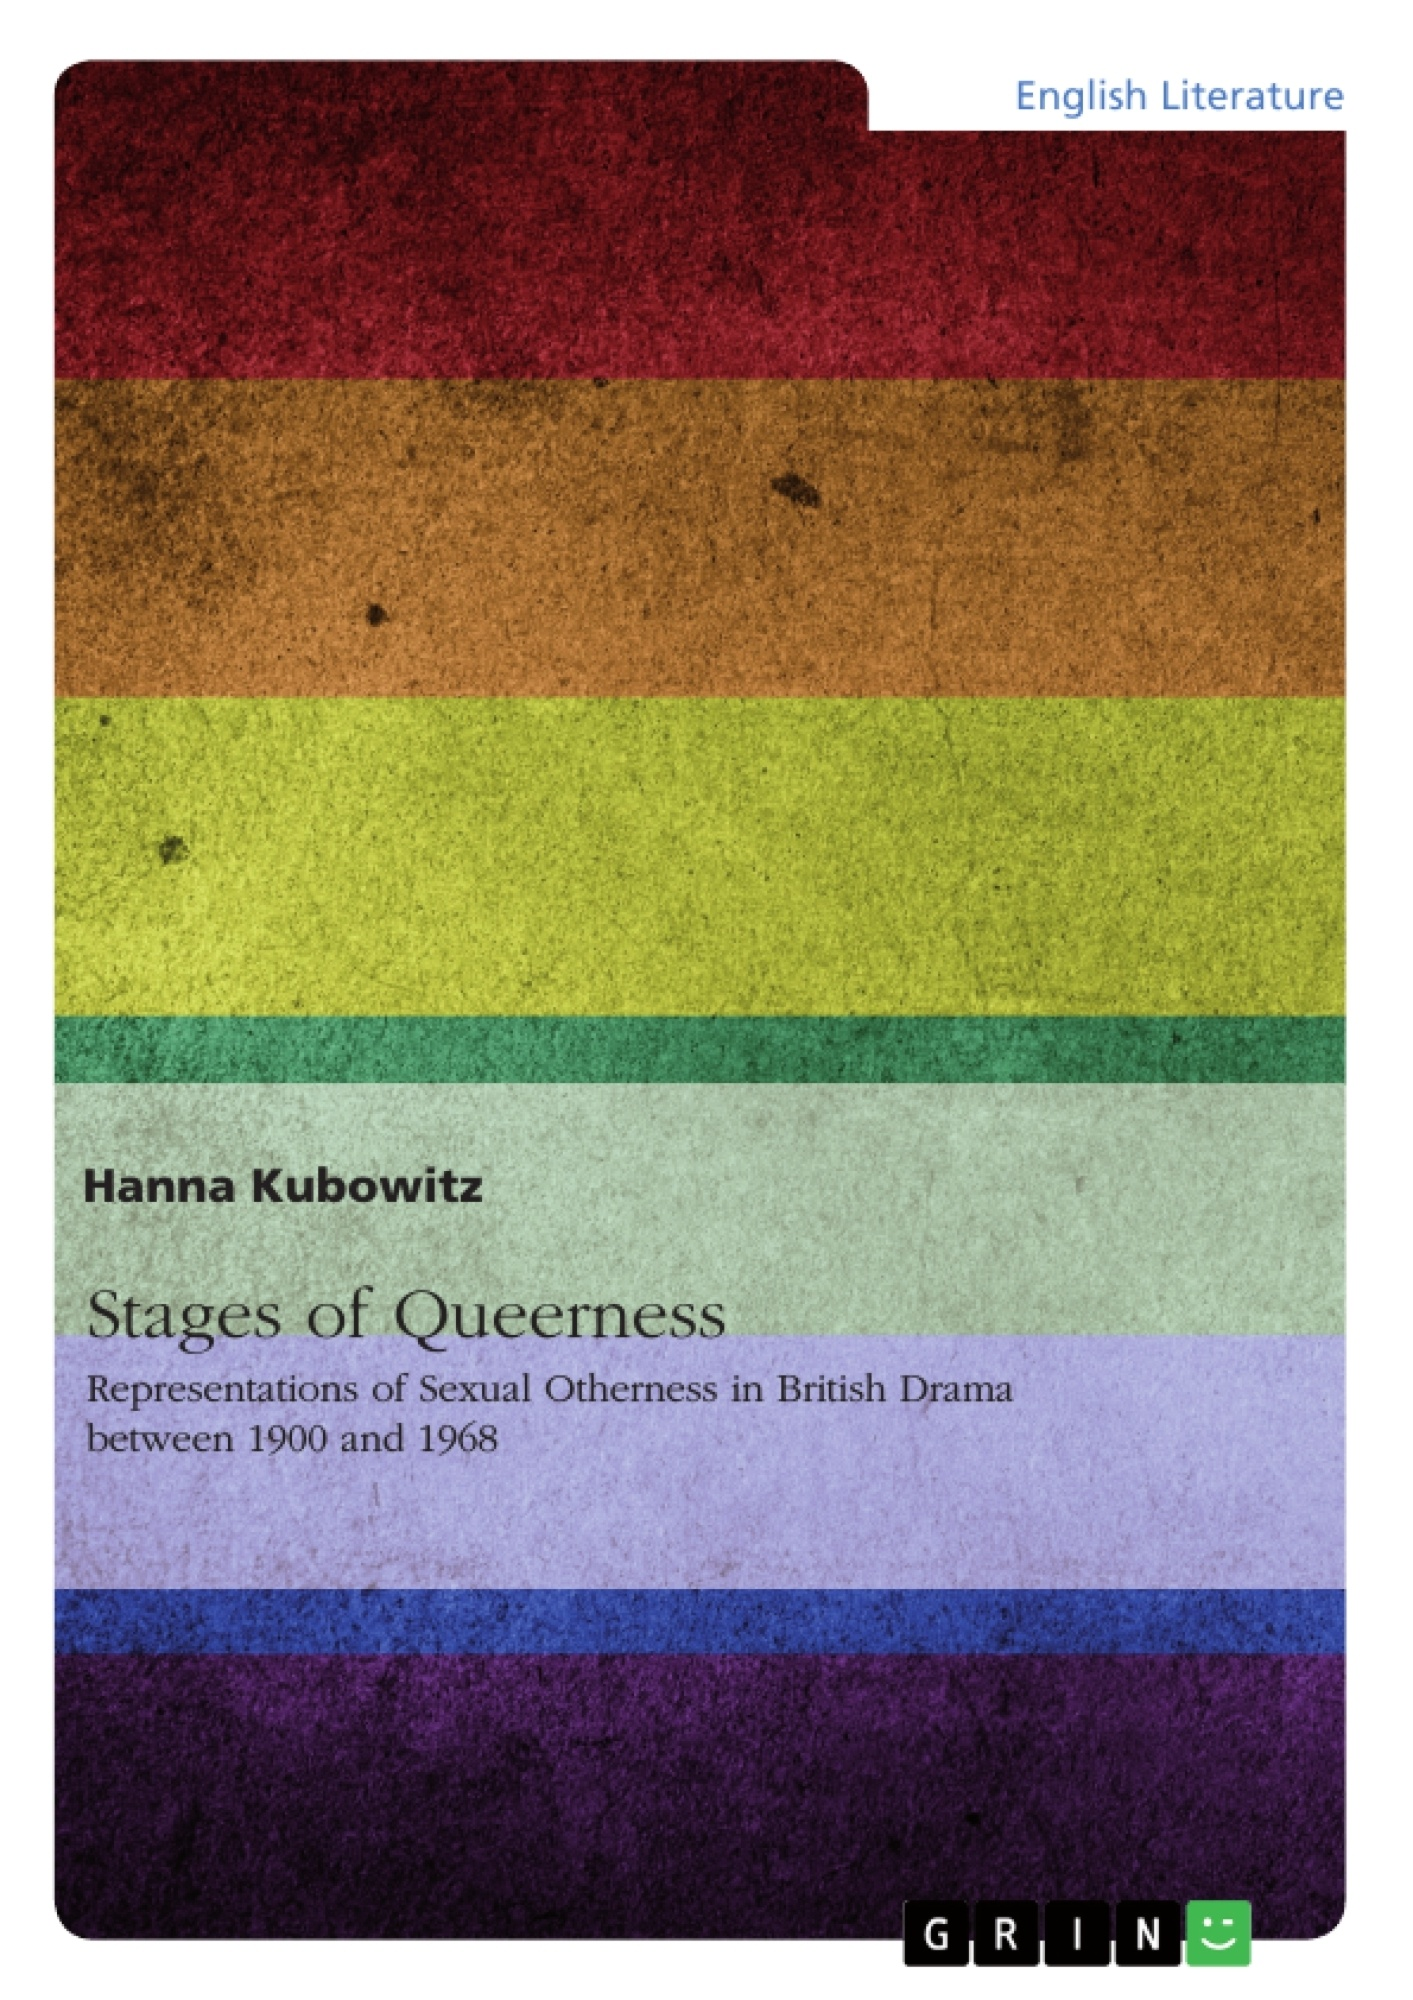 Title: Stages of Queerness